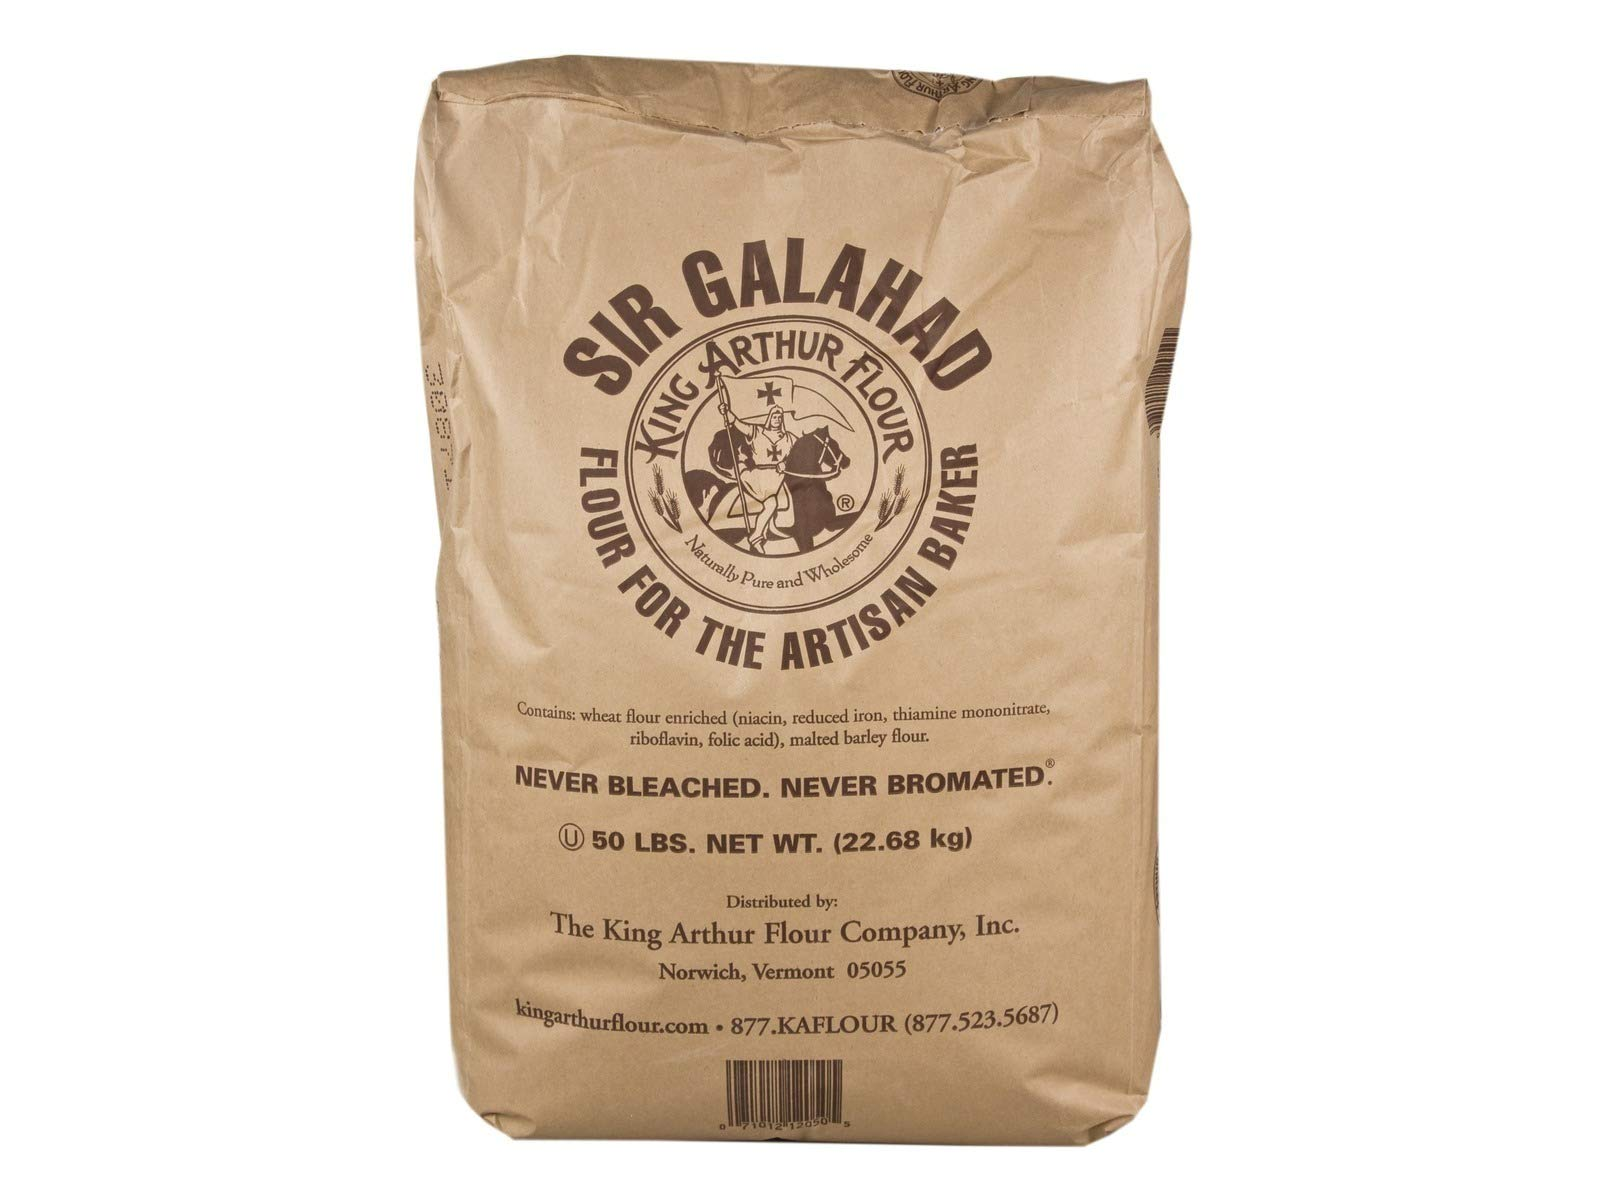 King Arthur Sir Galahad All Purpose Flour, 50 Lbs.